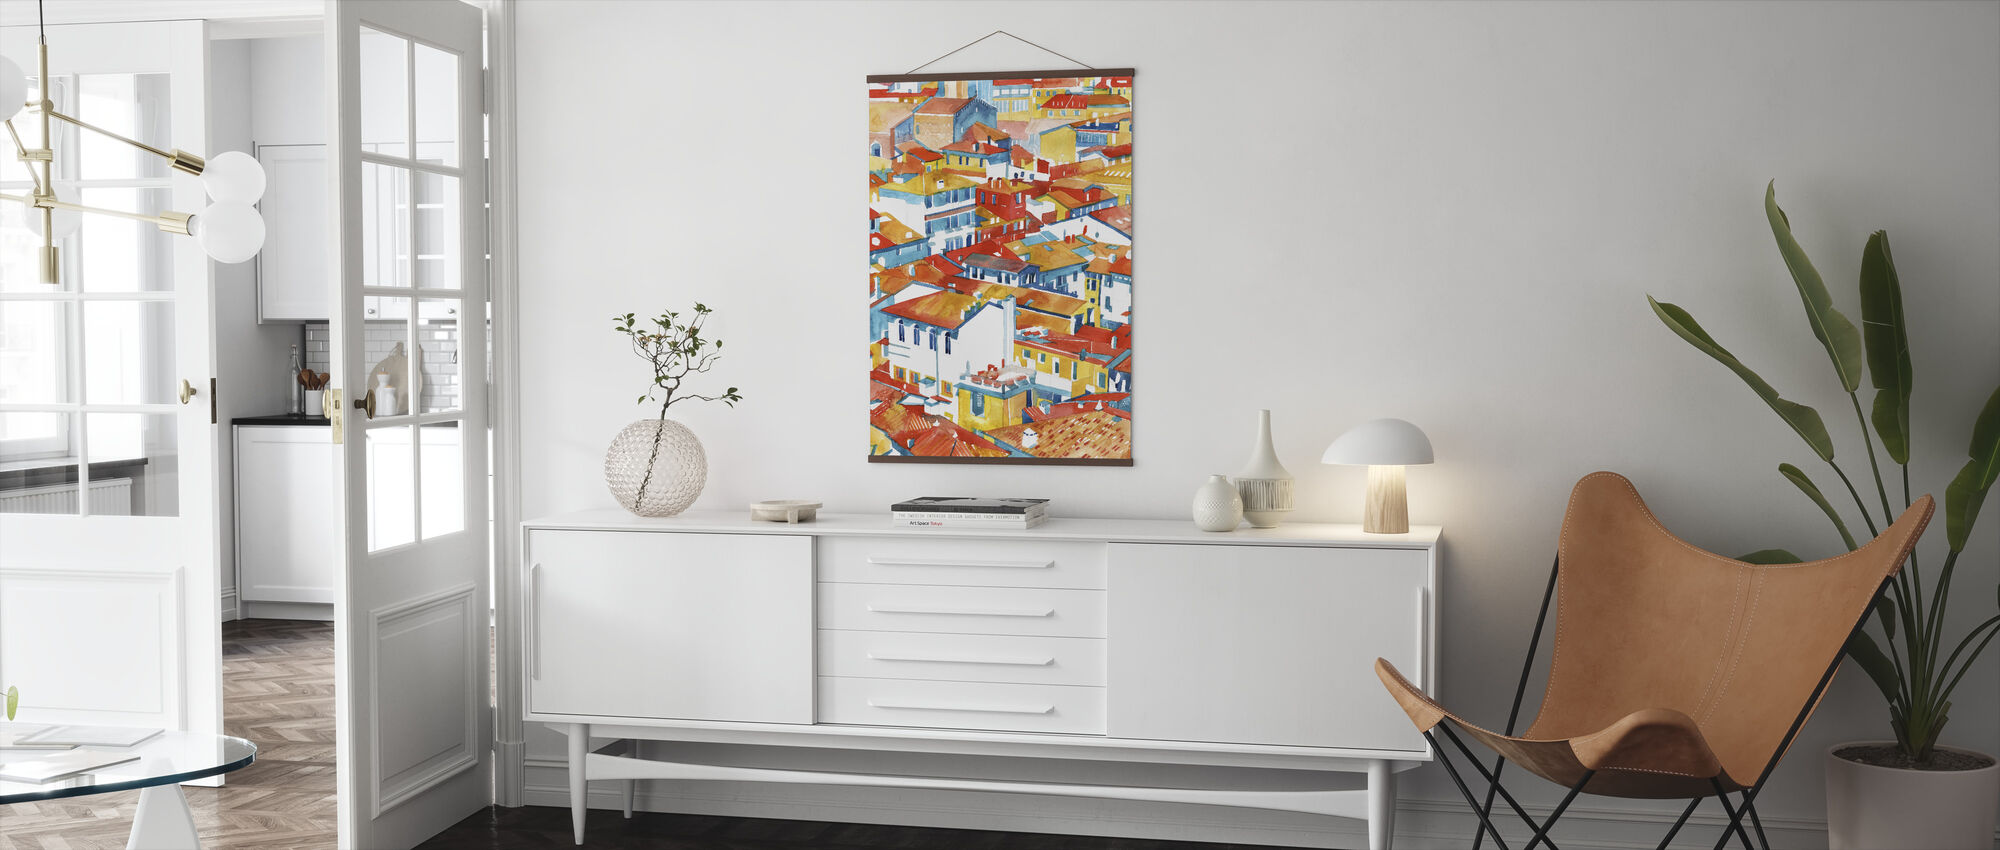 Verona Buildings - Poster - Living Room